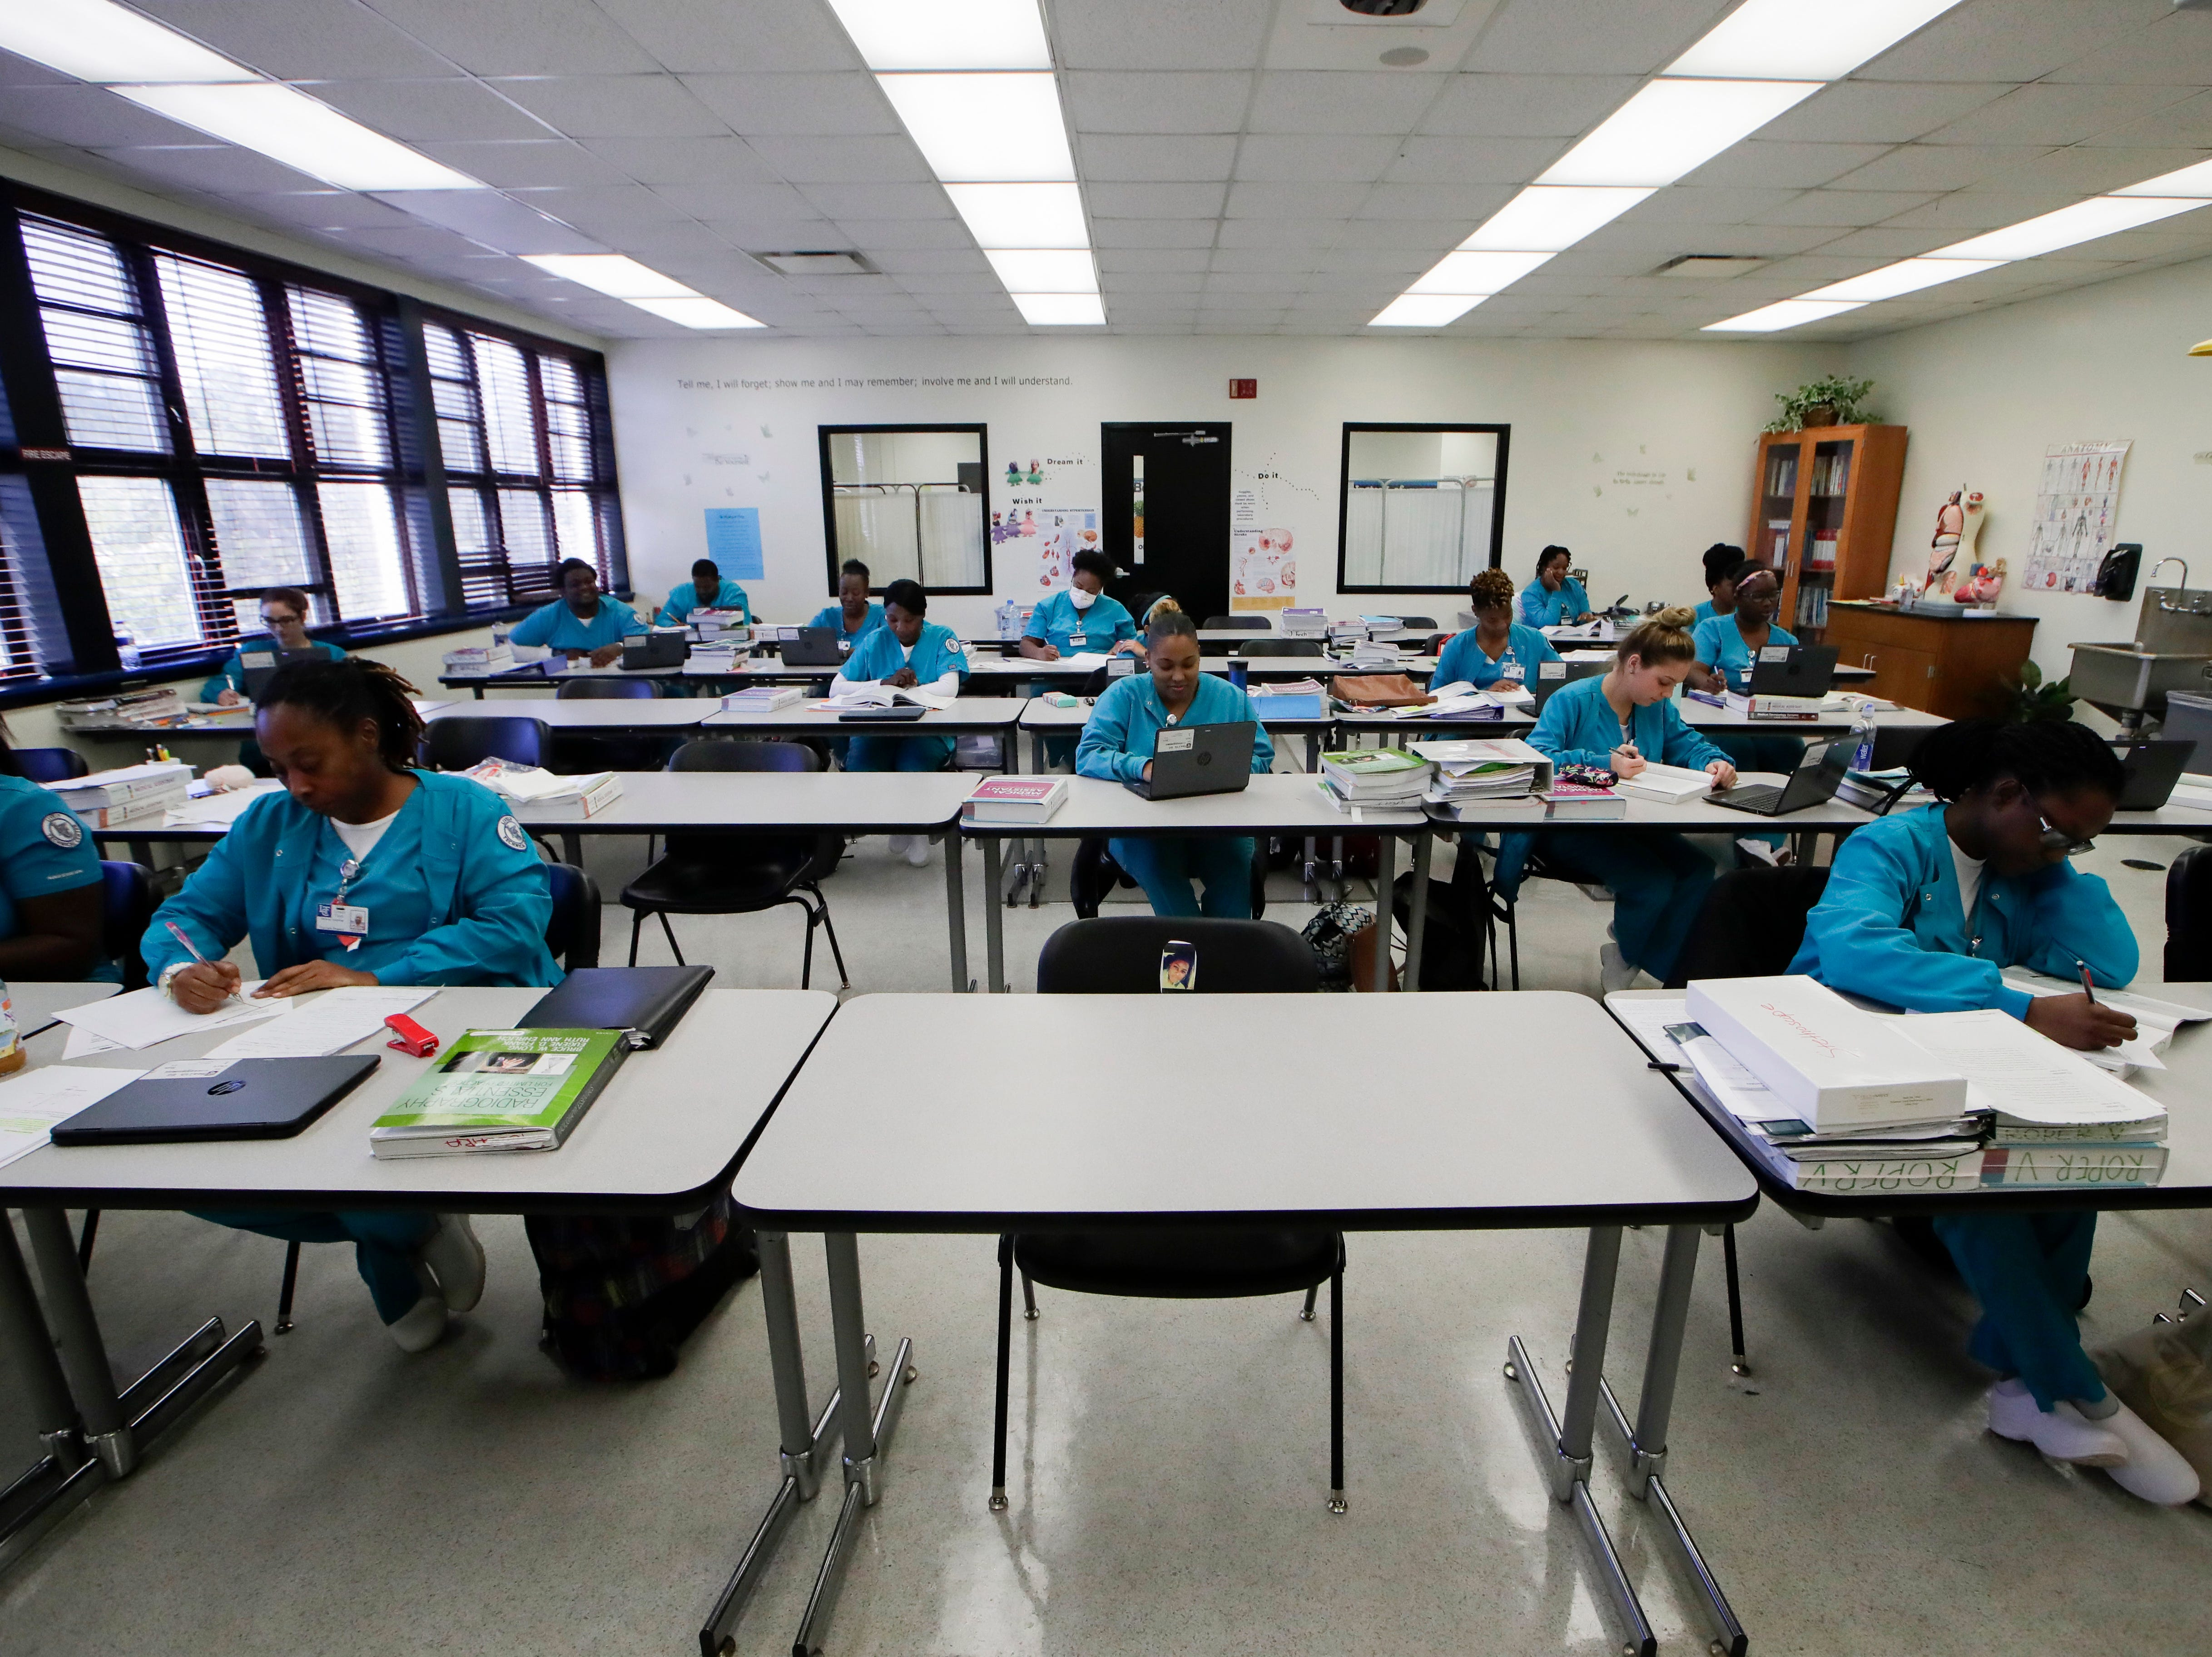 Medical assistant program students work in their classroom Wednesday, Jan. 9, 2019 at Lively Technical Center which has been approved by the Leon County School Board to change it's name to Lively Technical College.